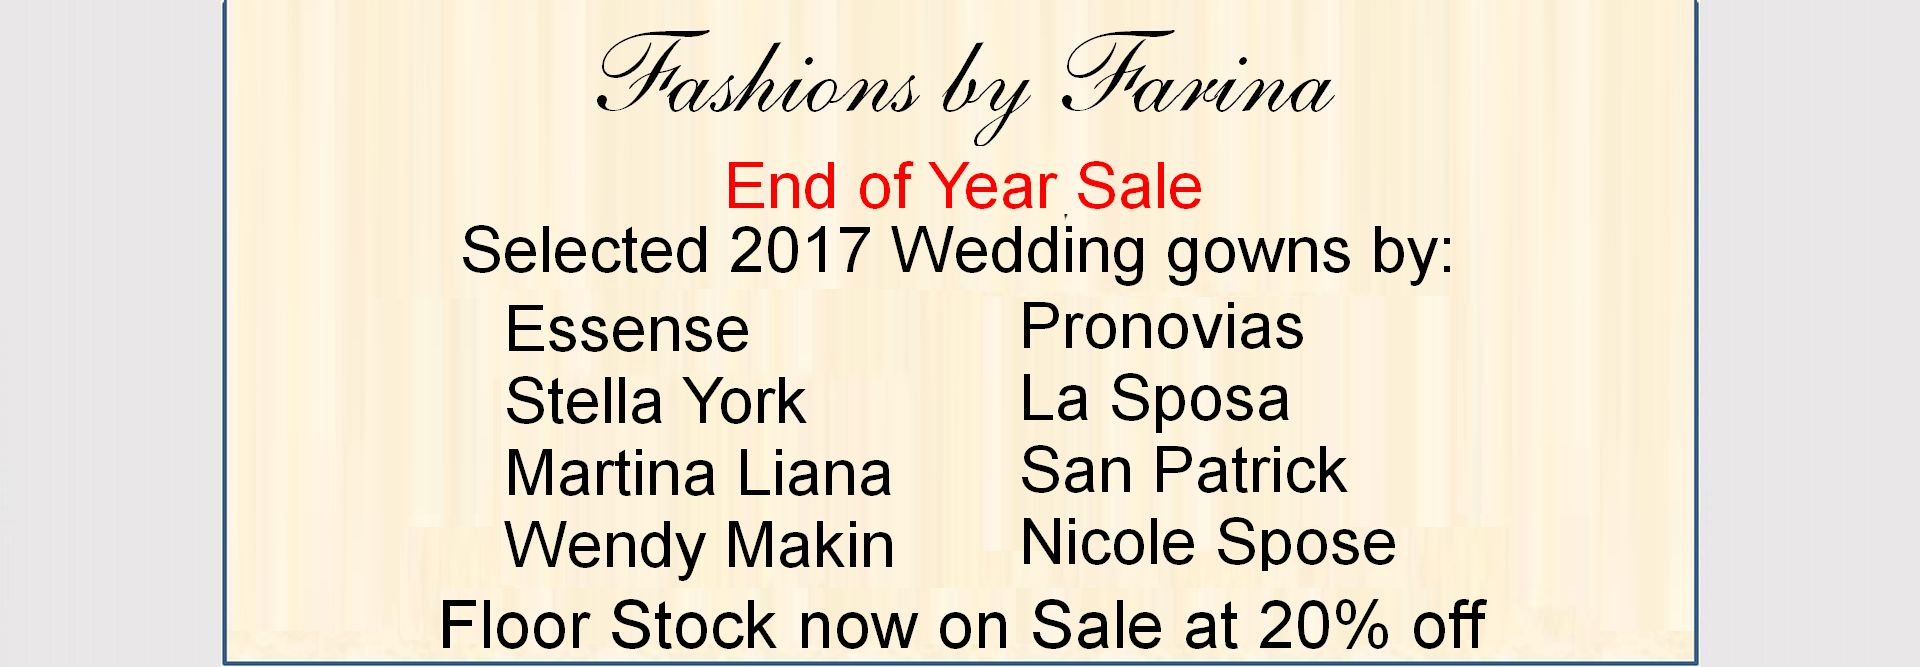 End-or-year-sale